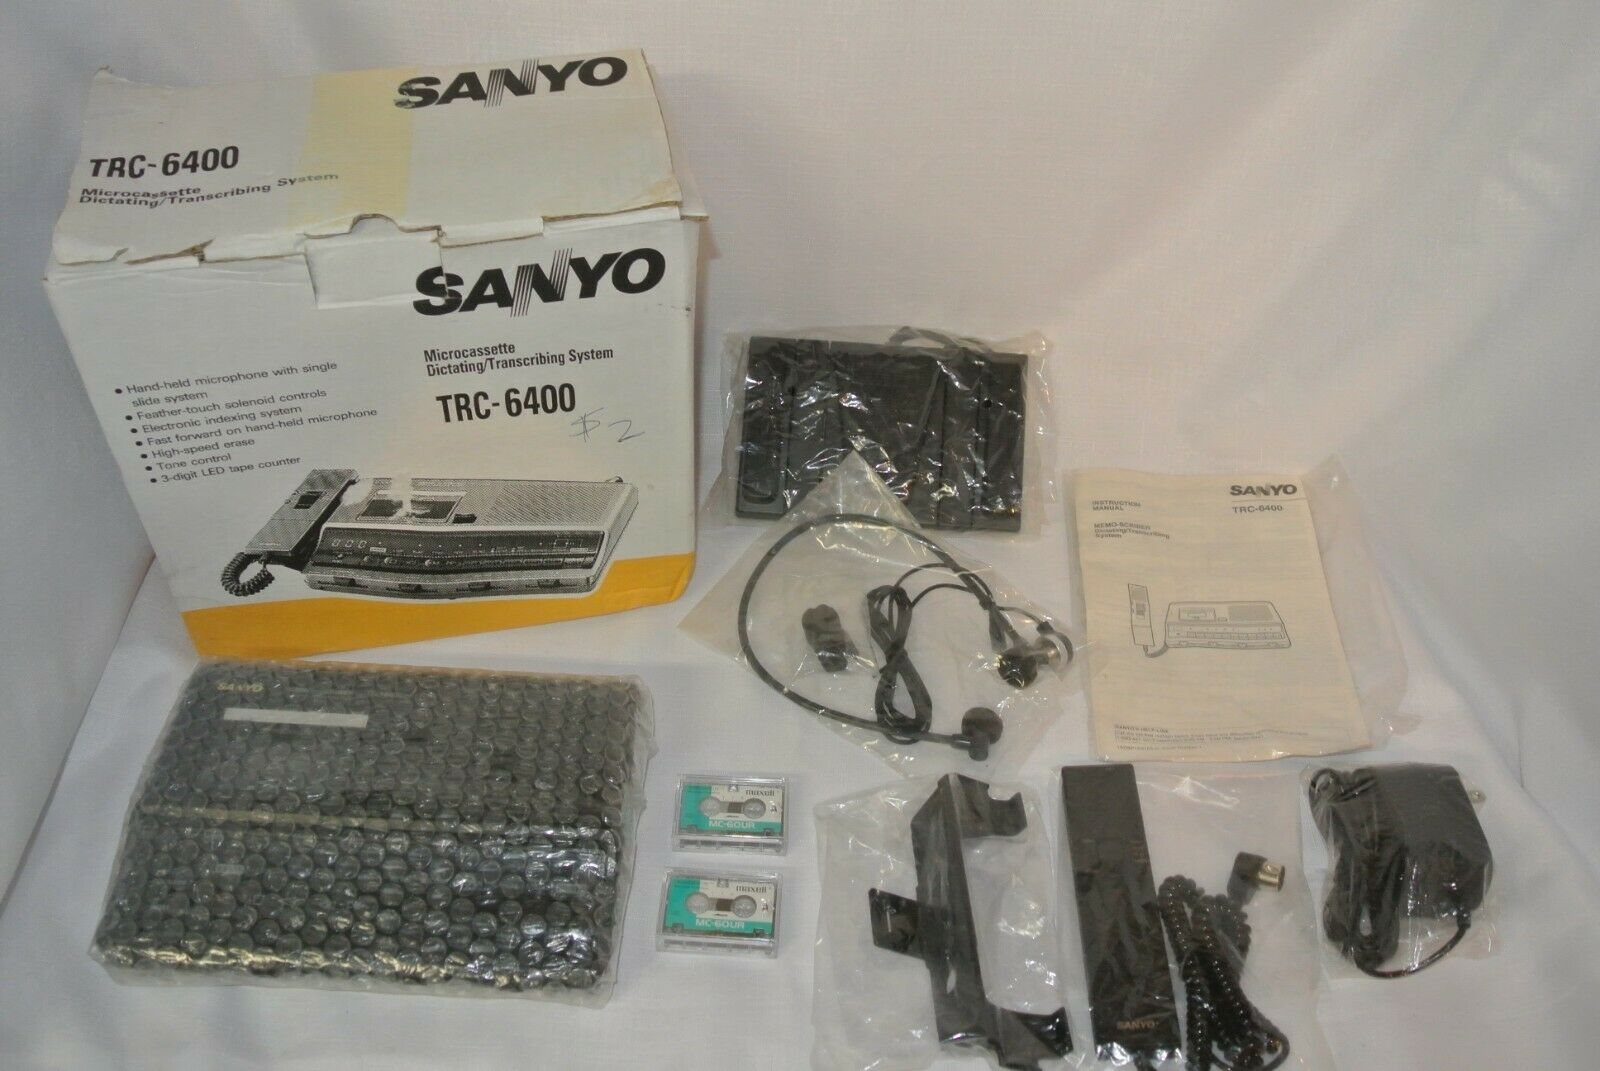 Sanyo TRC-6400 Desktop Microcassette Recorder//Transcriber with Handheld Microphone